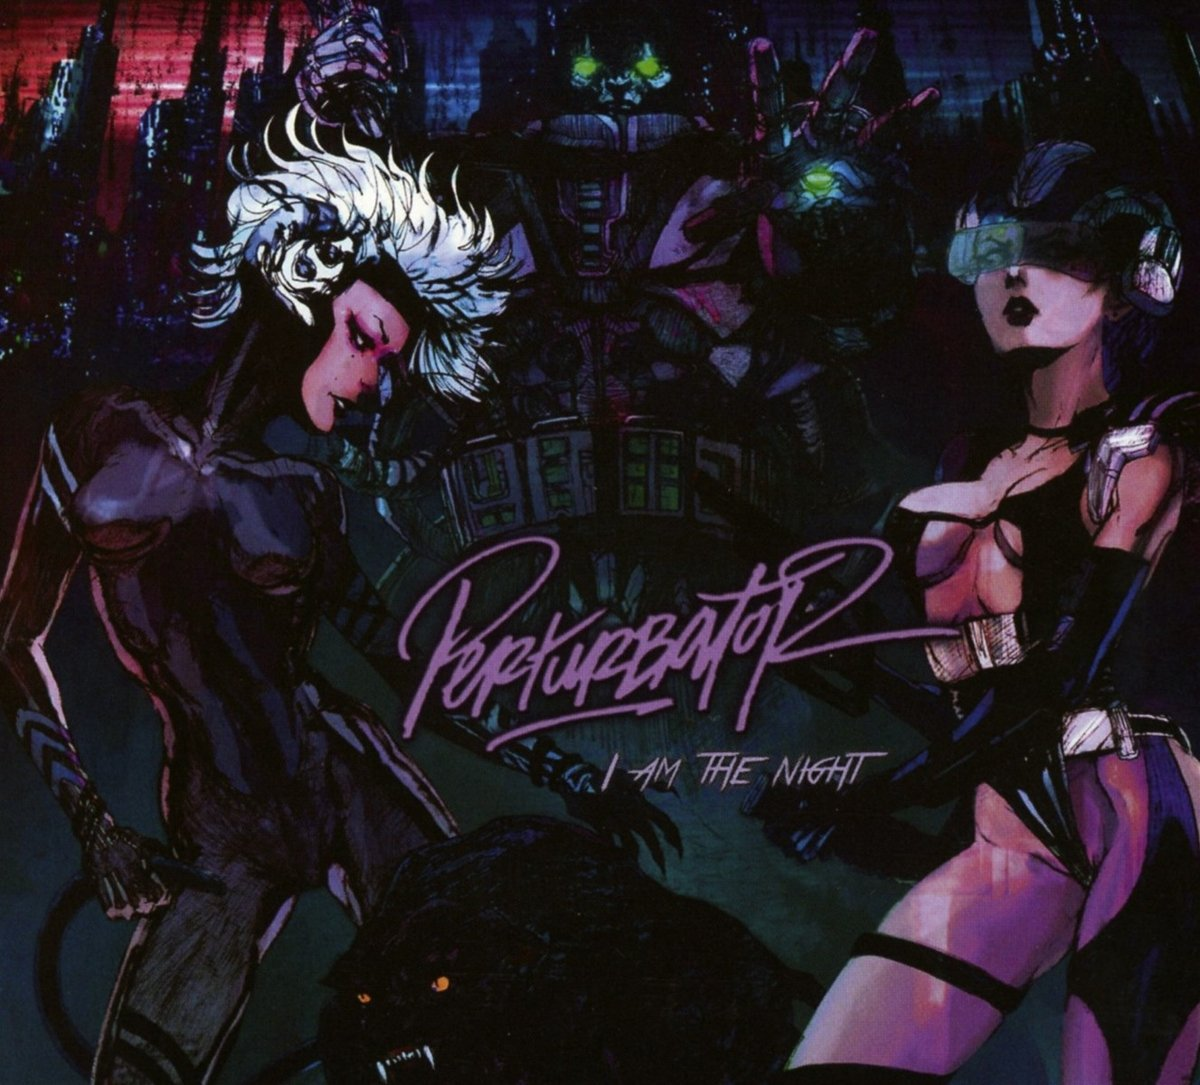 CD : Perturbator - I Am the Night (CD)